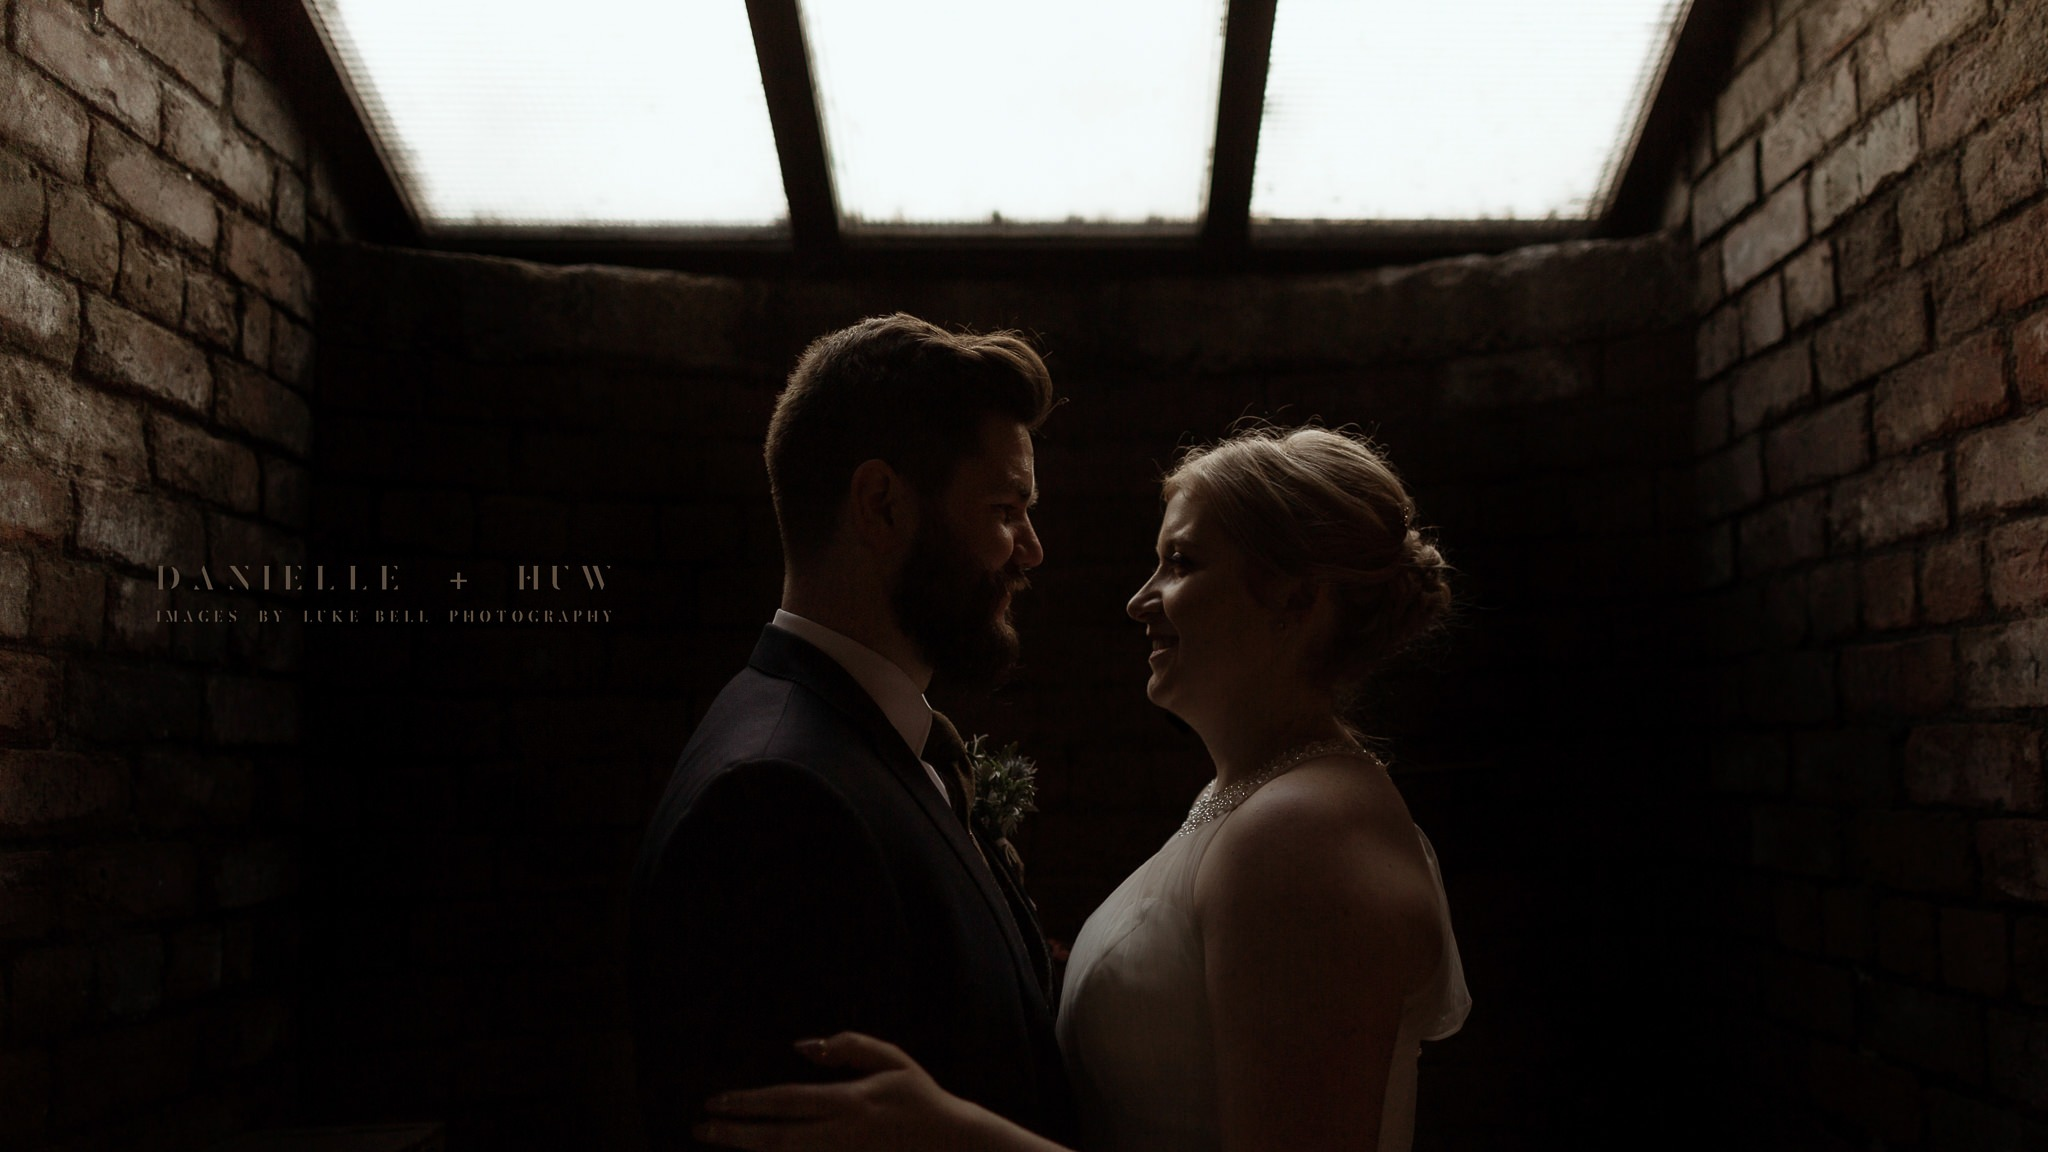 Victoria Warehouse Manchester Wedding | Huw + Danielle